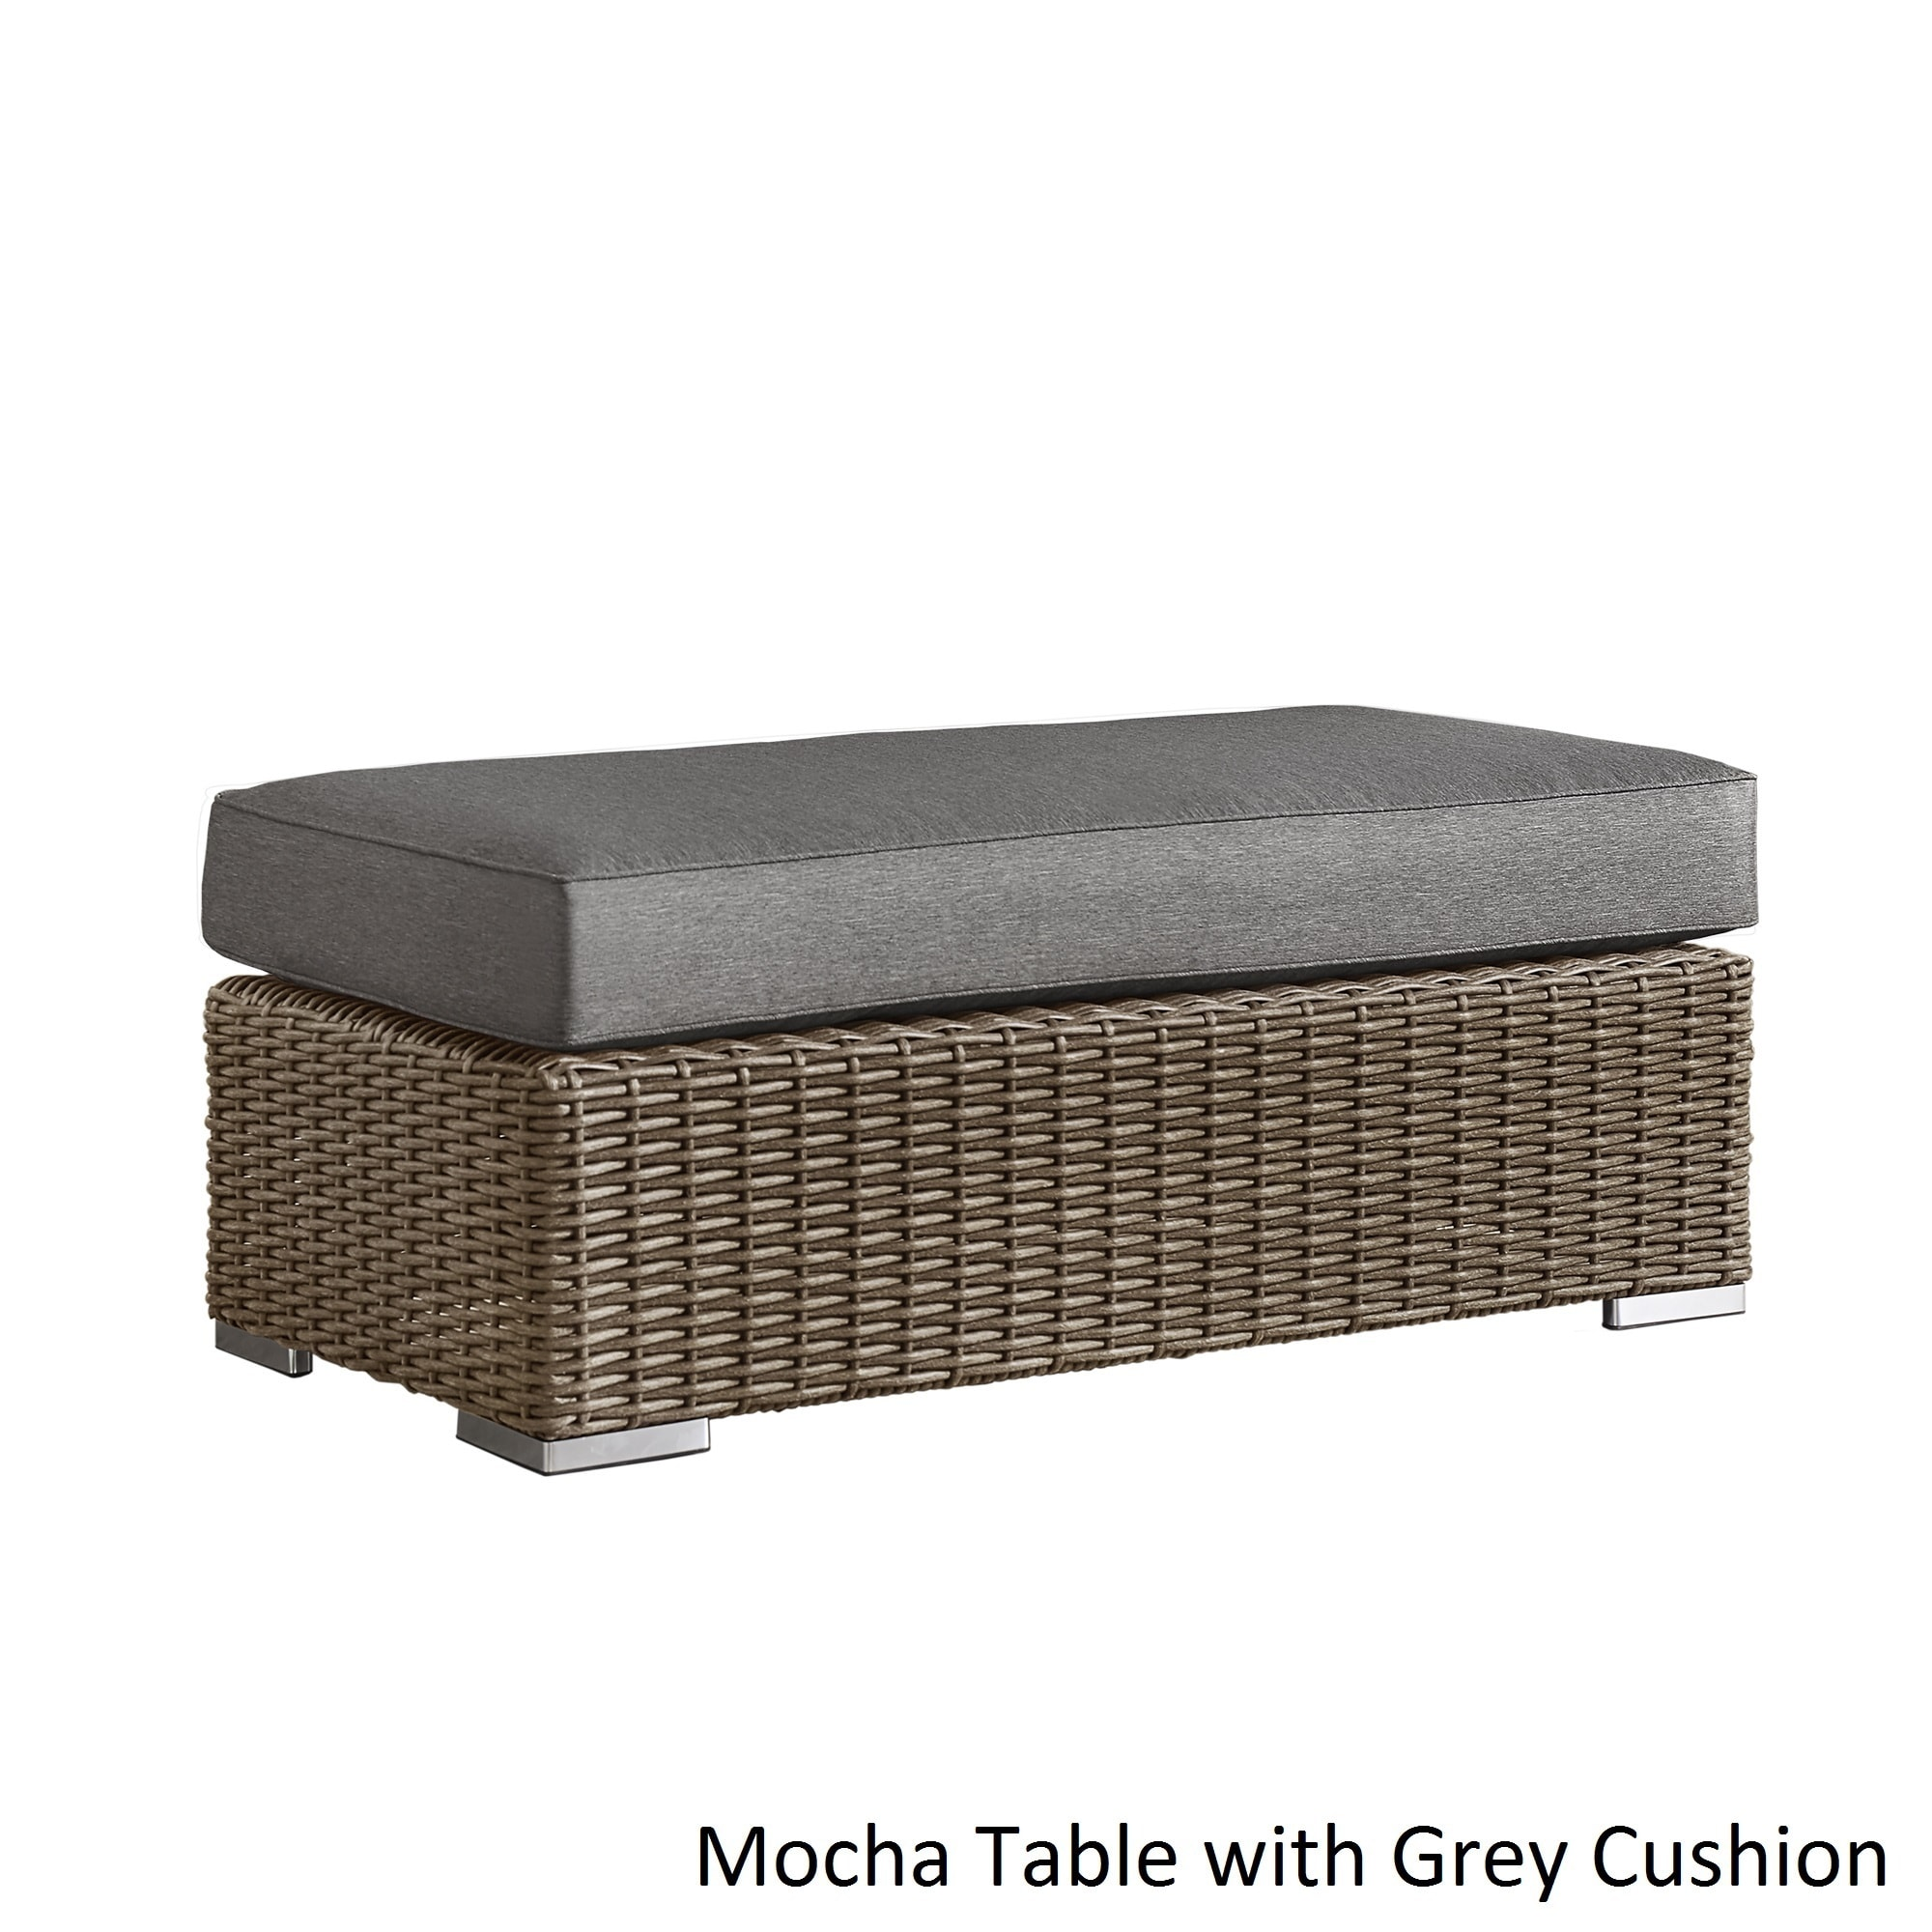 Barbados Wicker Patio Cushioned Rectangular Coffee Table Ottoman by iNSPIRE  Q Oasis - Free Shipping Today - Overstock.com - 19490939